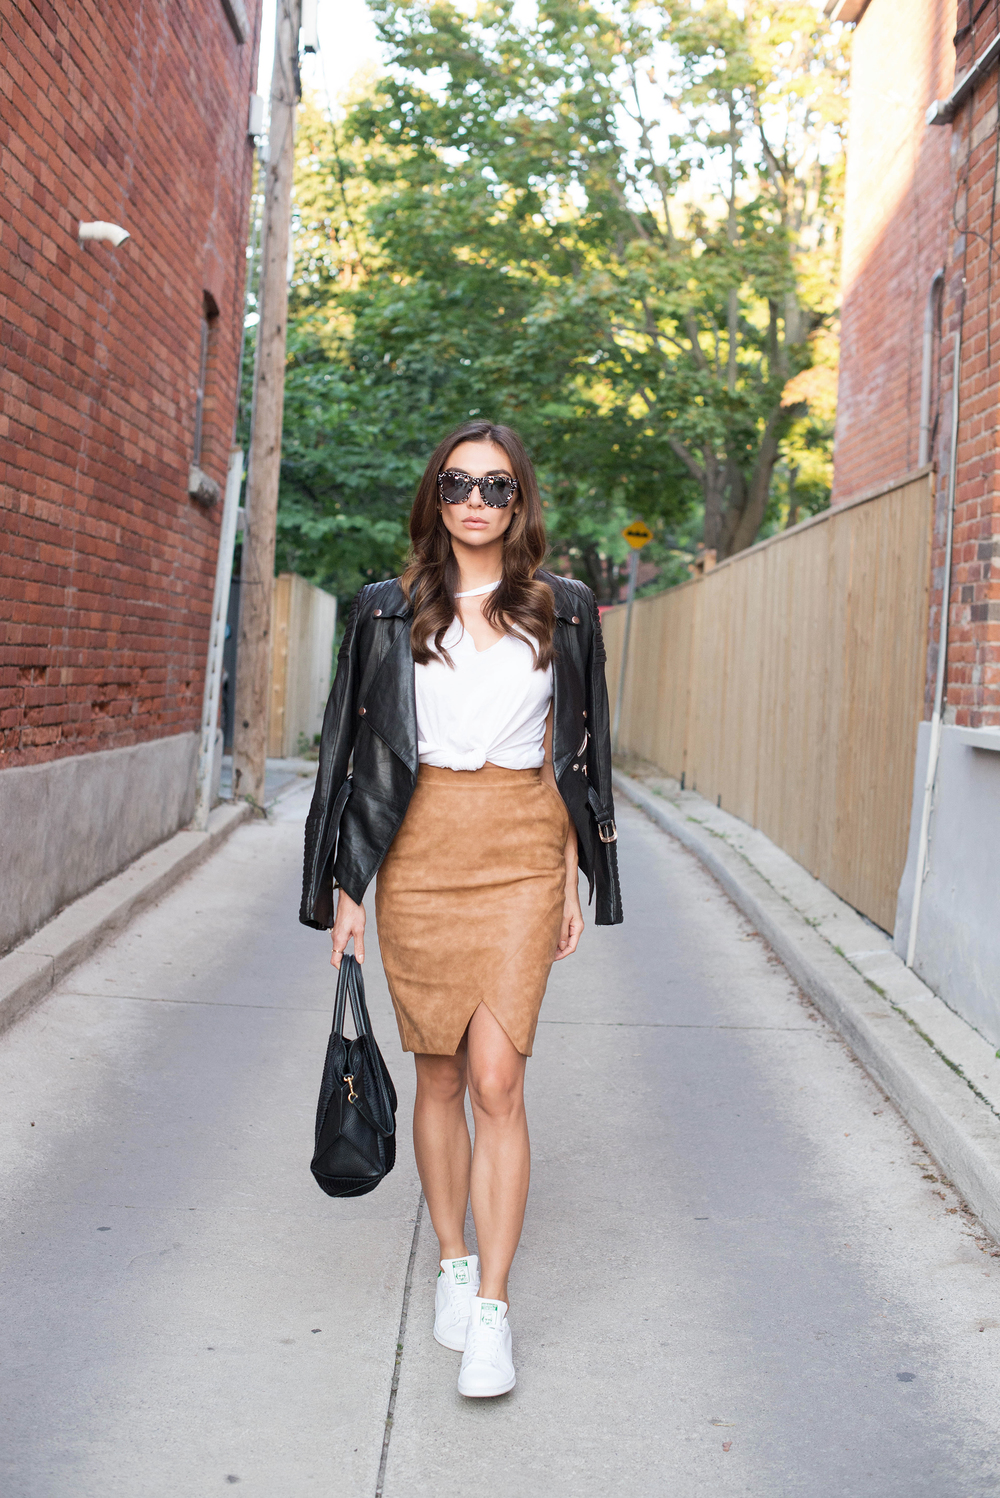 LNA Tank. House of CB Skirt. Stan Smith Shoes. Oliveve Bag. Valley Sunglasses.